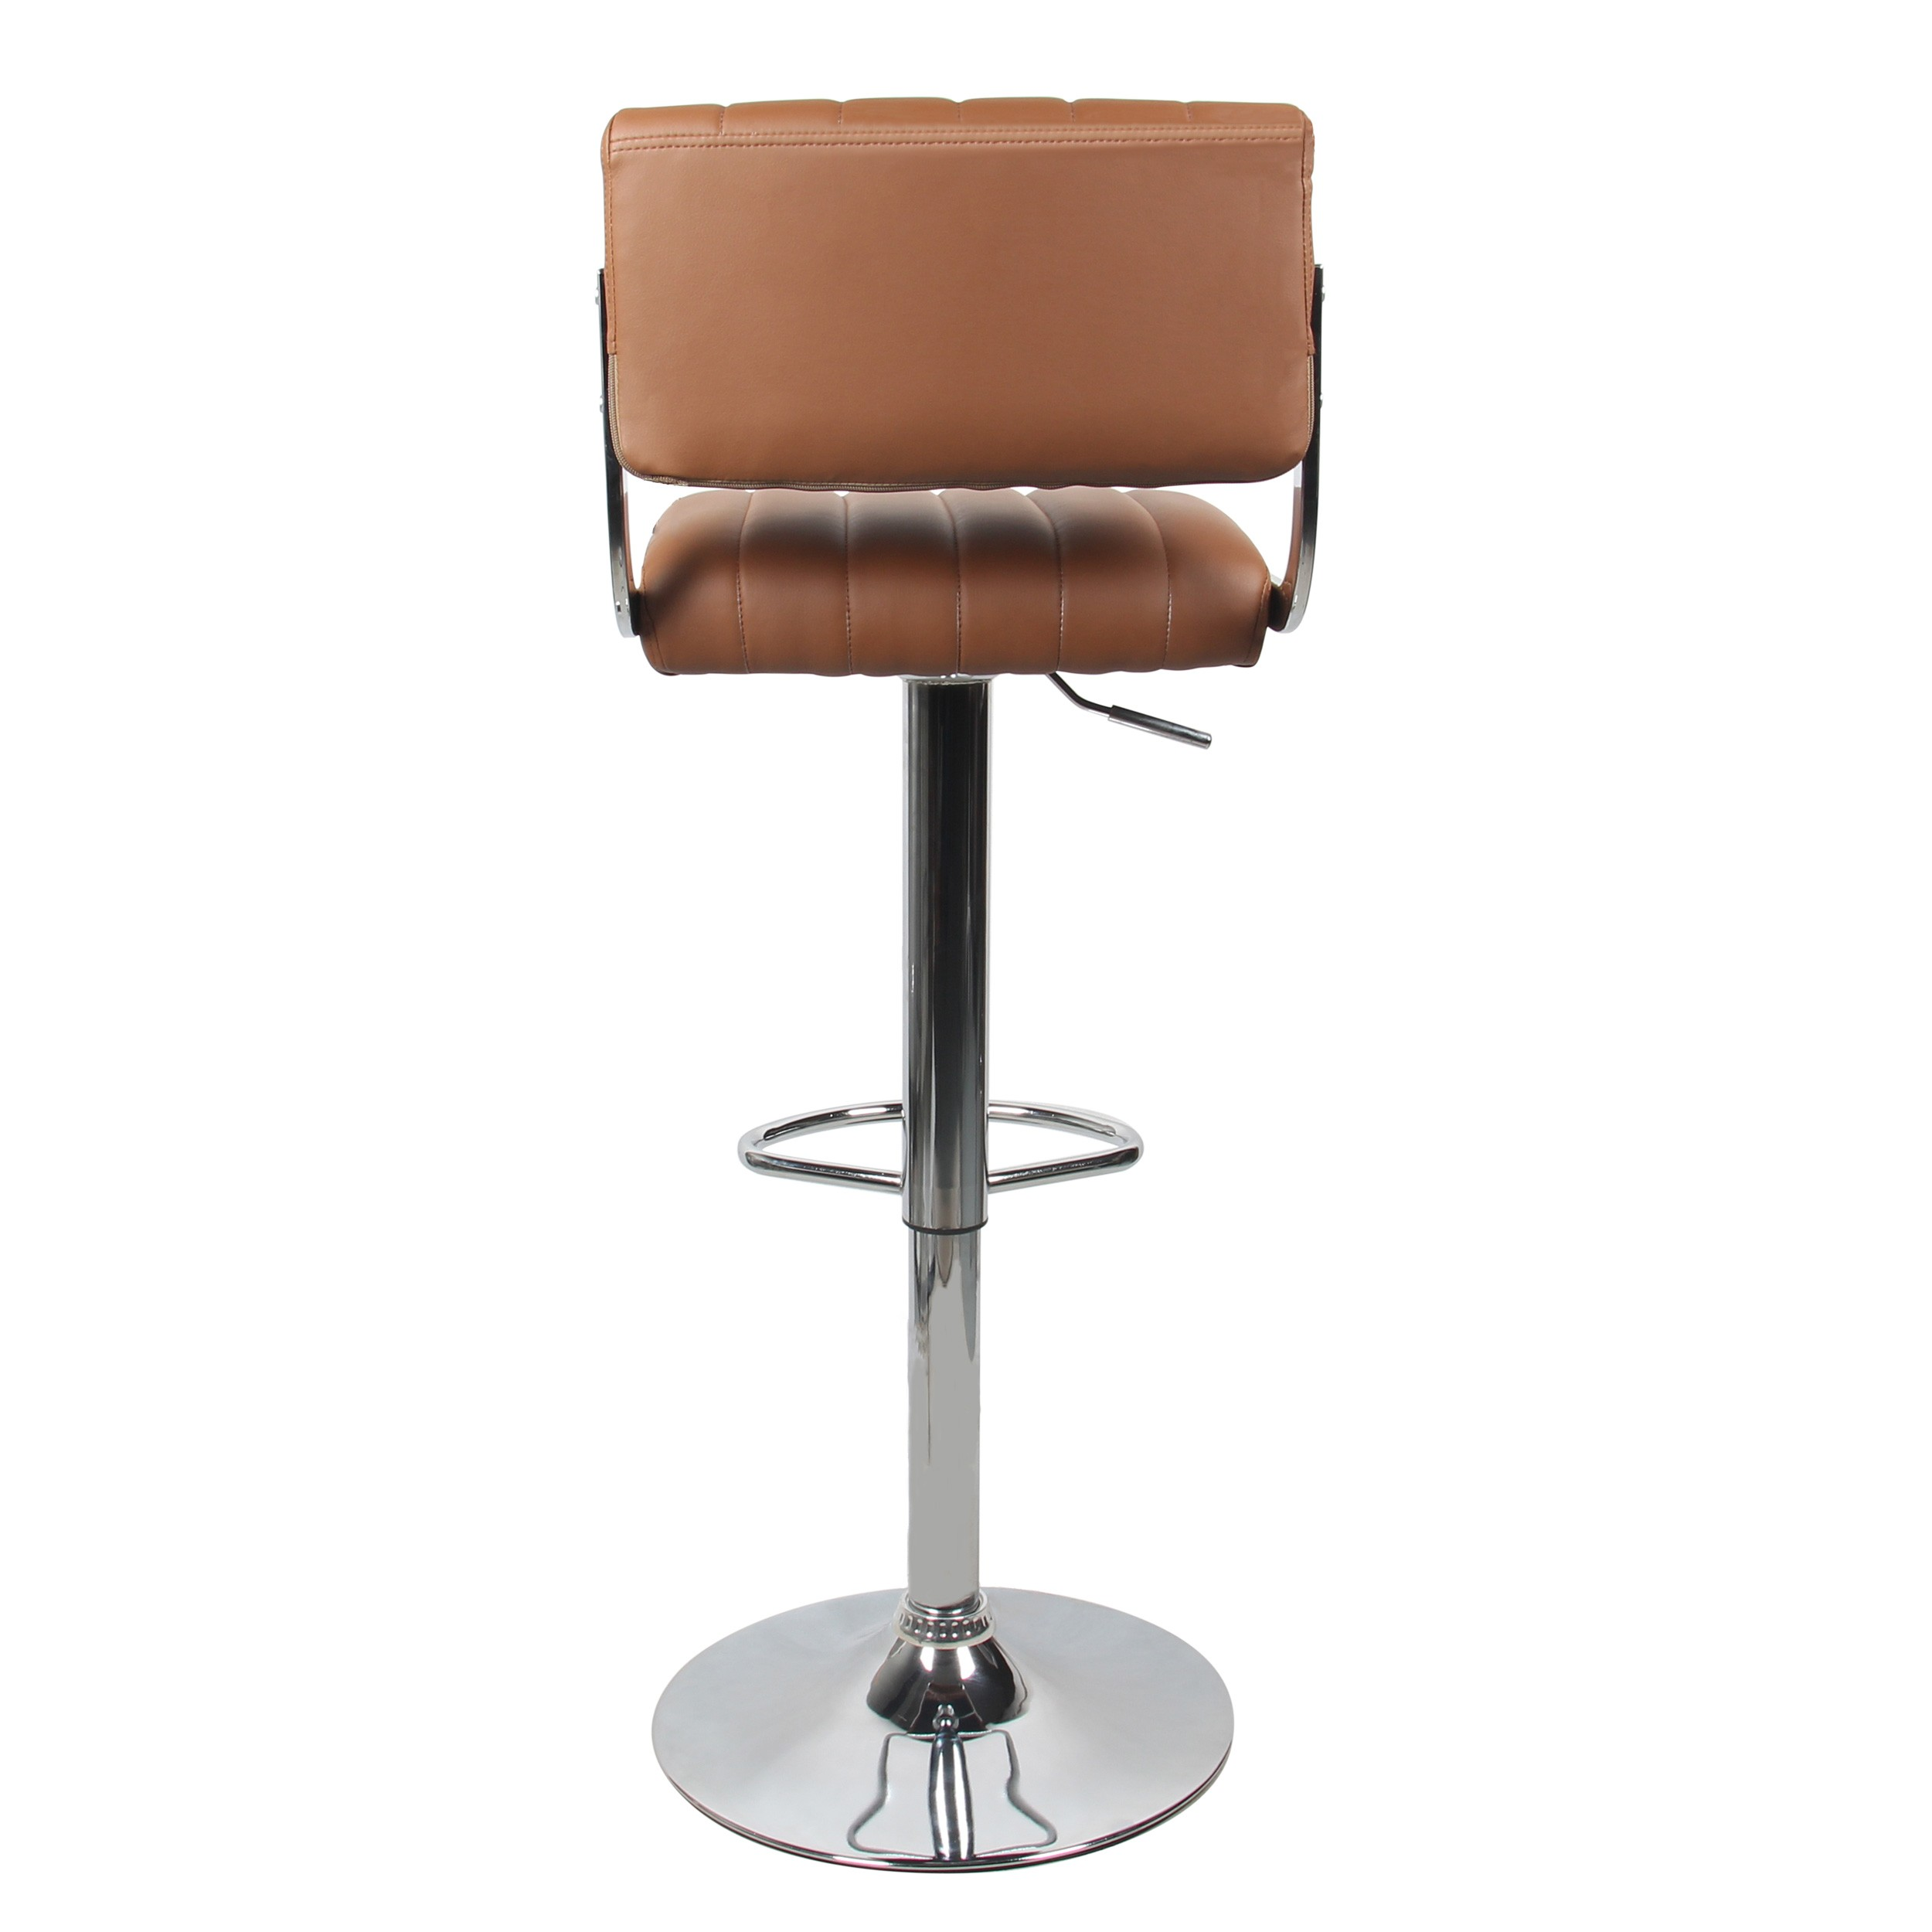 tabouret de bar design marron